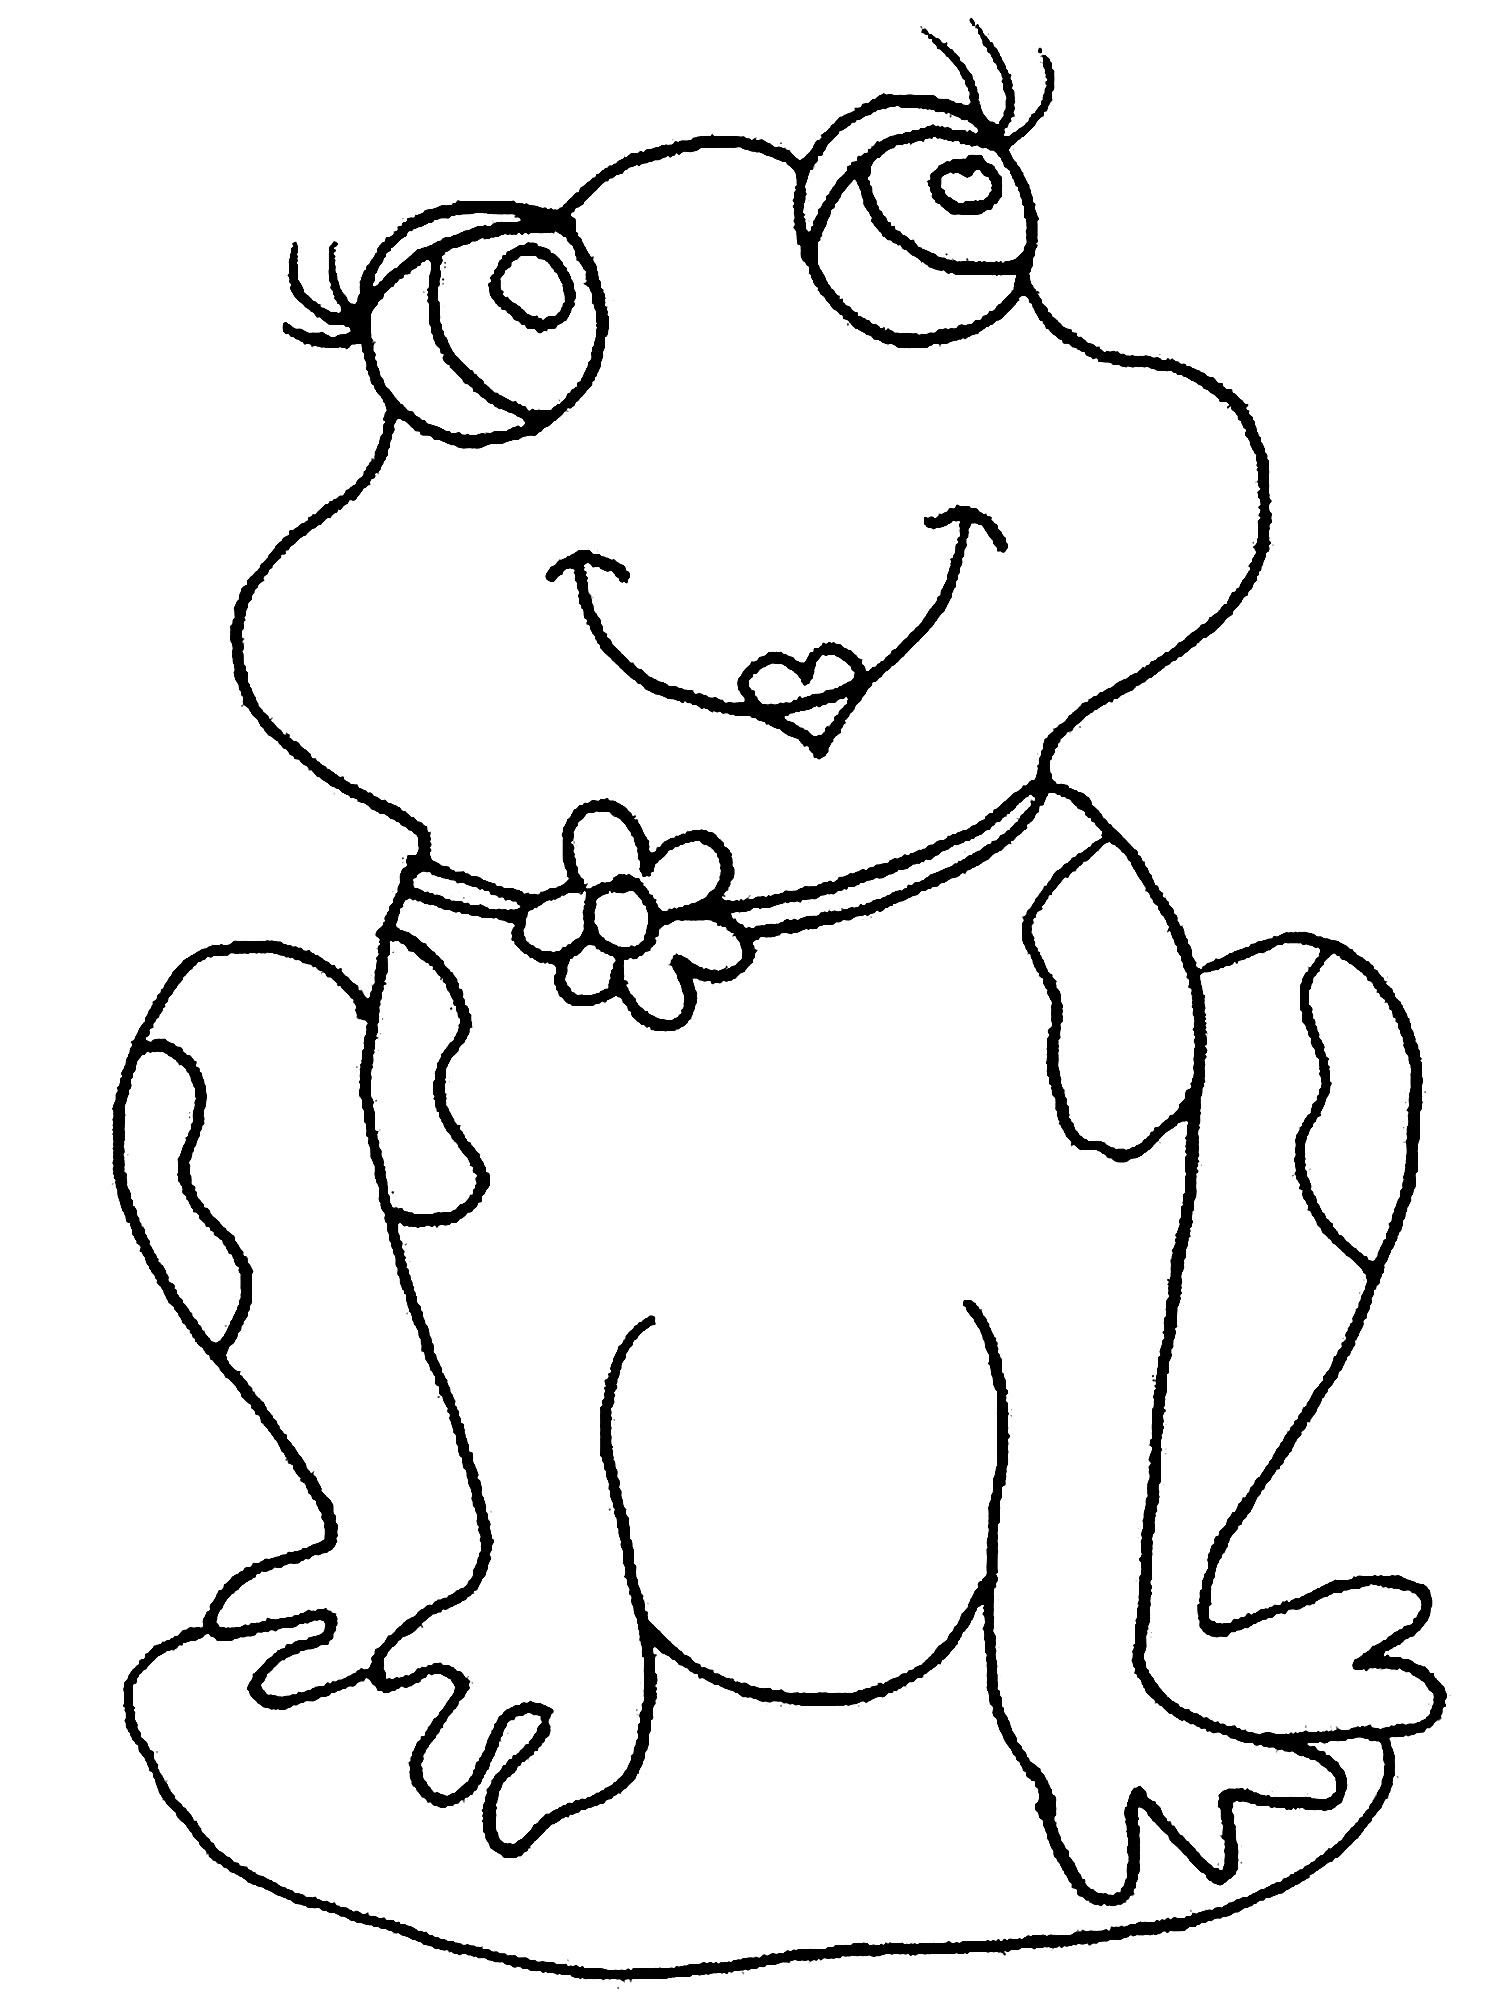 Frogs To Print Easy Free Frogs Coloring Page To Download From The Gallery Frogs Just Color Kid In 2021 Frosch Malvorlagen Malvorlage Prinzessin Vogel Malvorlagen